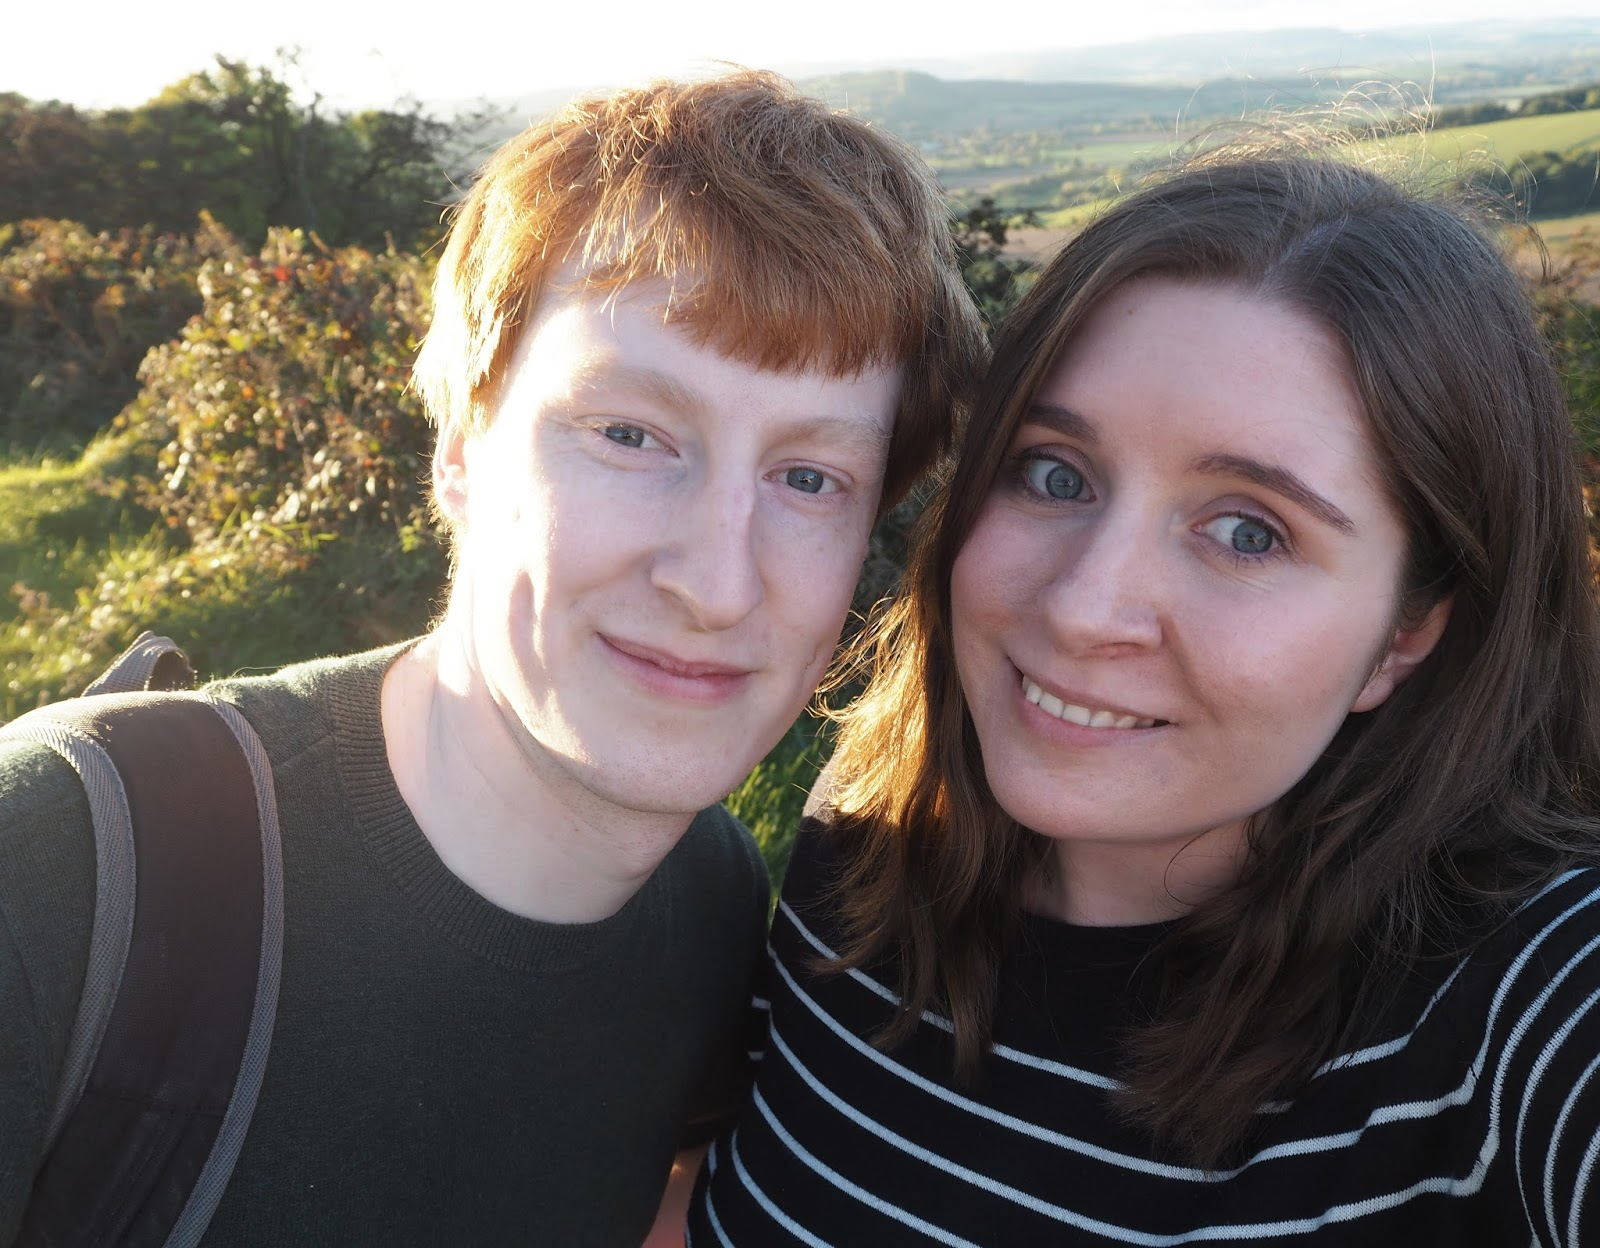 Sunset Couple Selfie